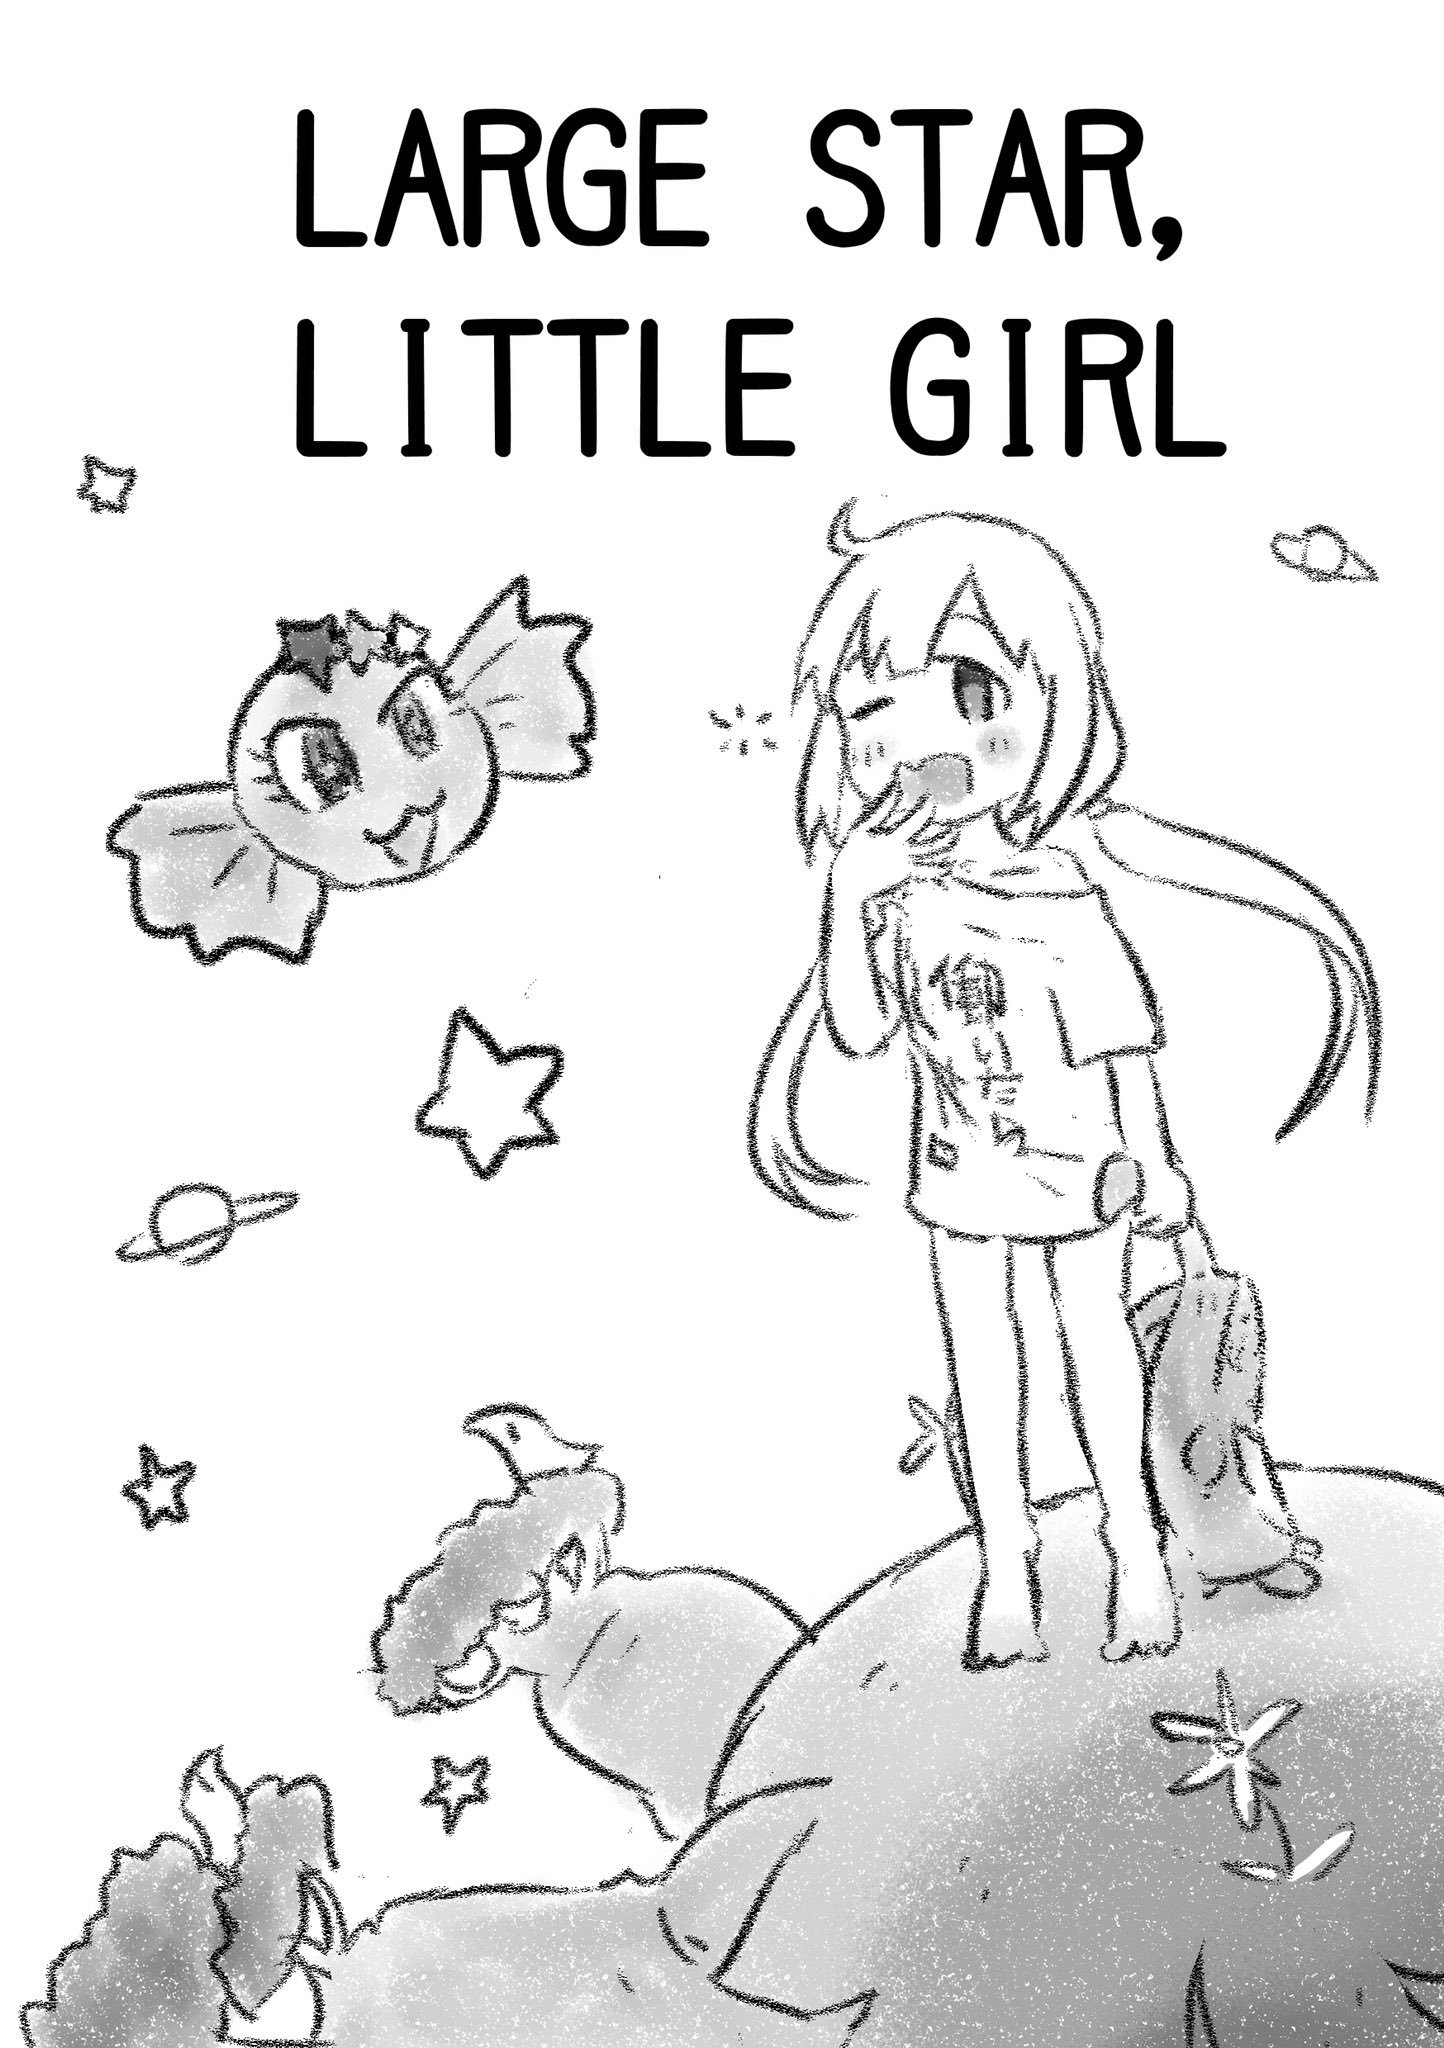 [단편] LARGE STAR, LITTLE GIRL